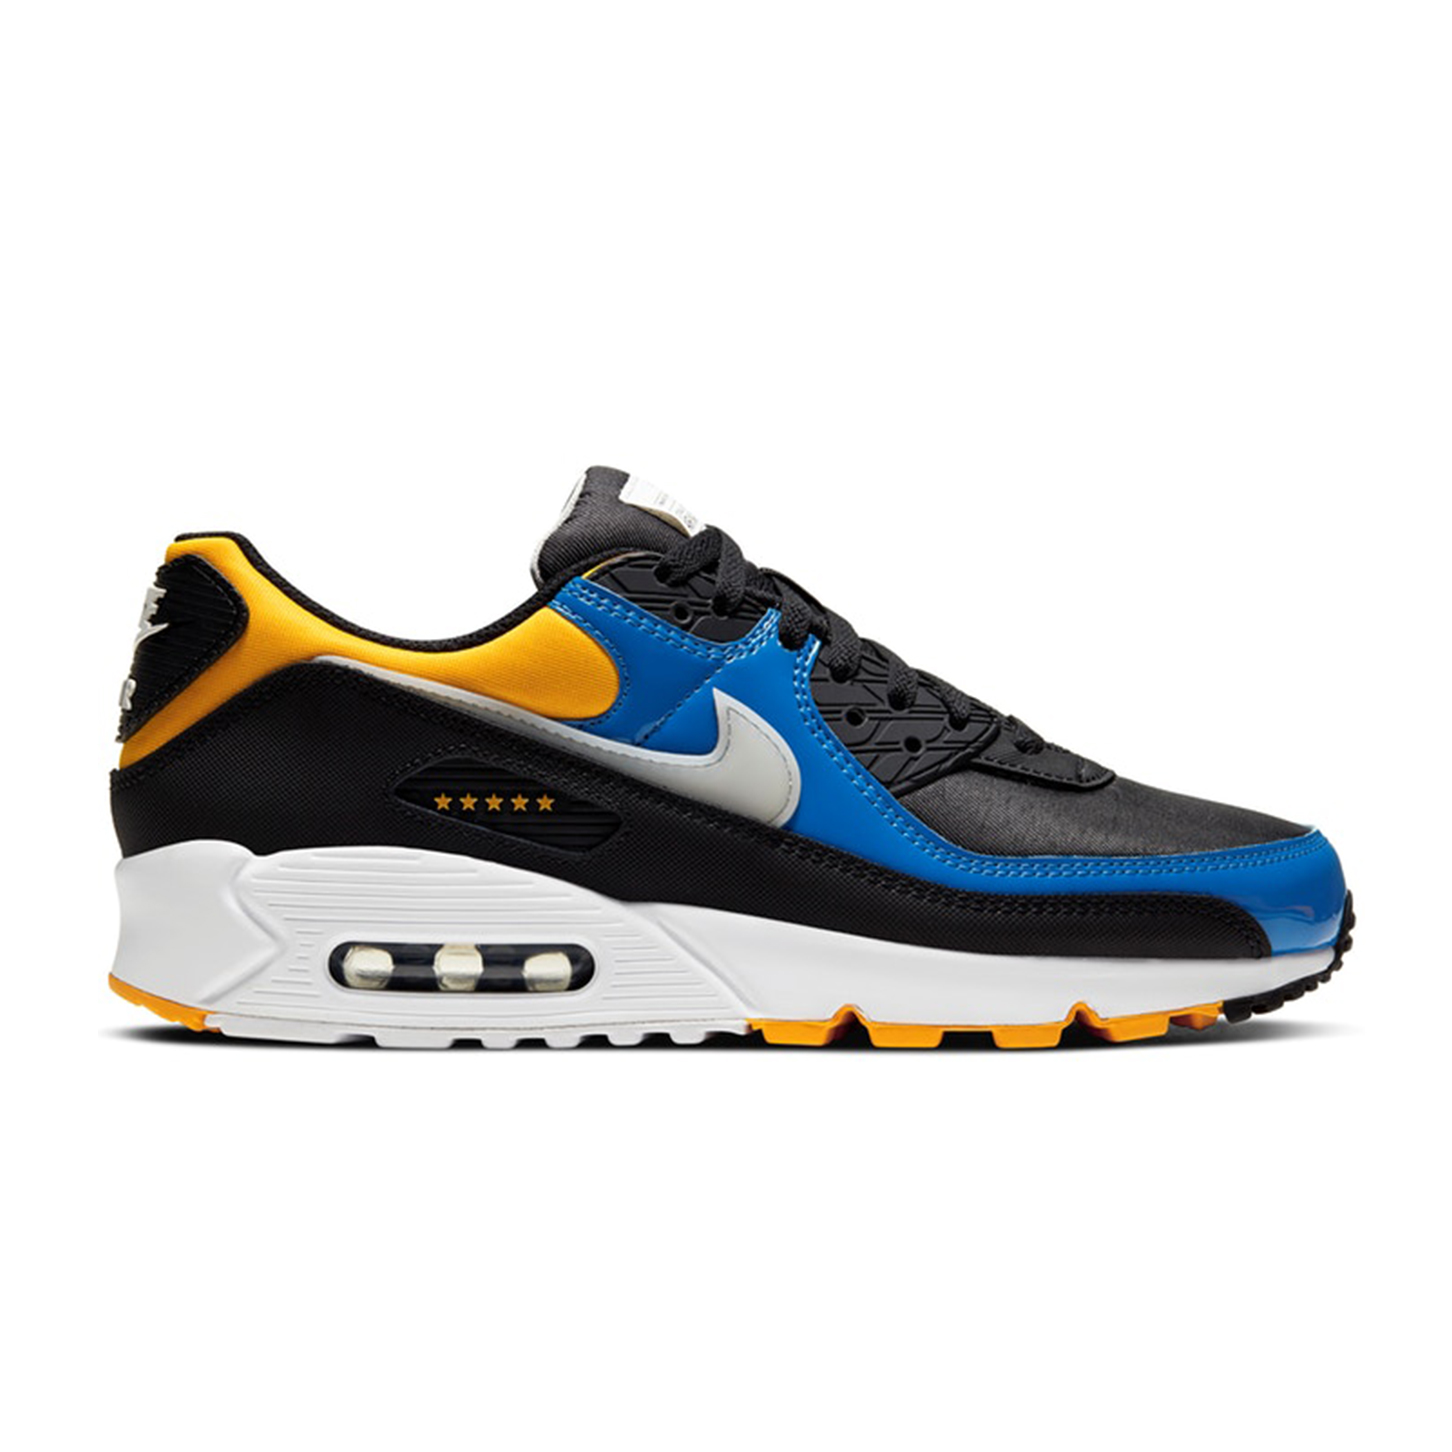 Nike-Air-Max-90-City-Pack-Shanghai-2020